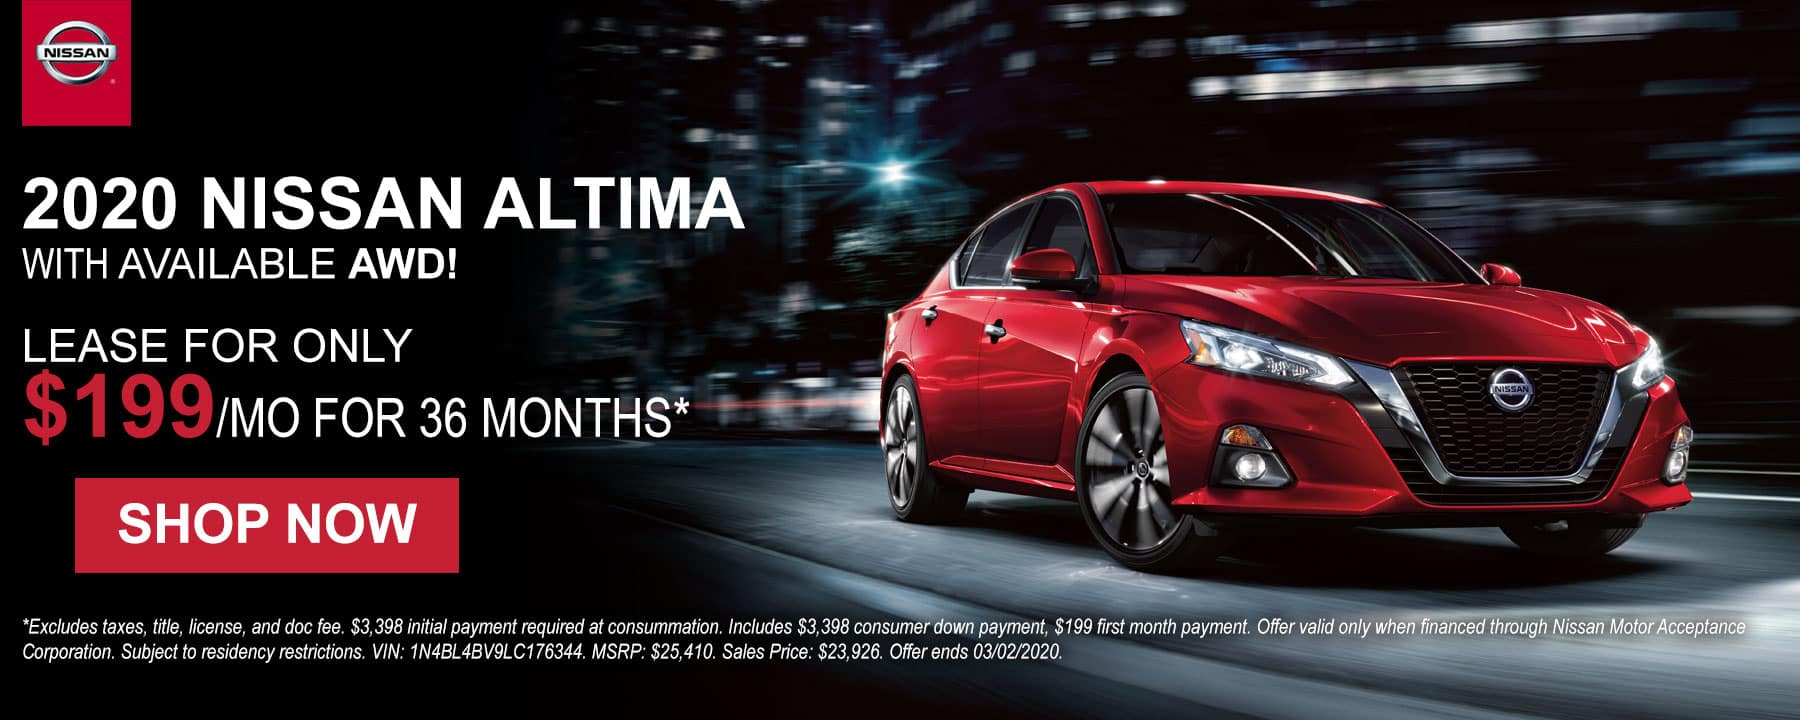 Lease a 2020 Nissan Altima for only $199